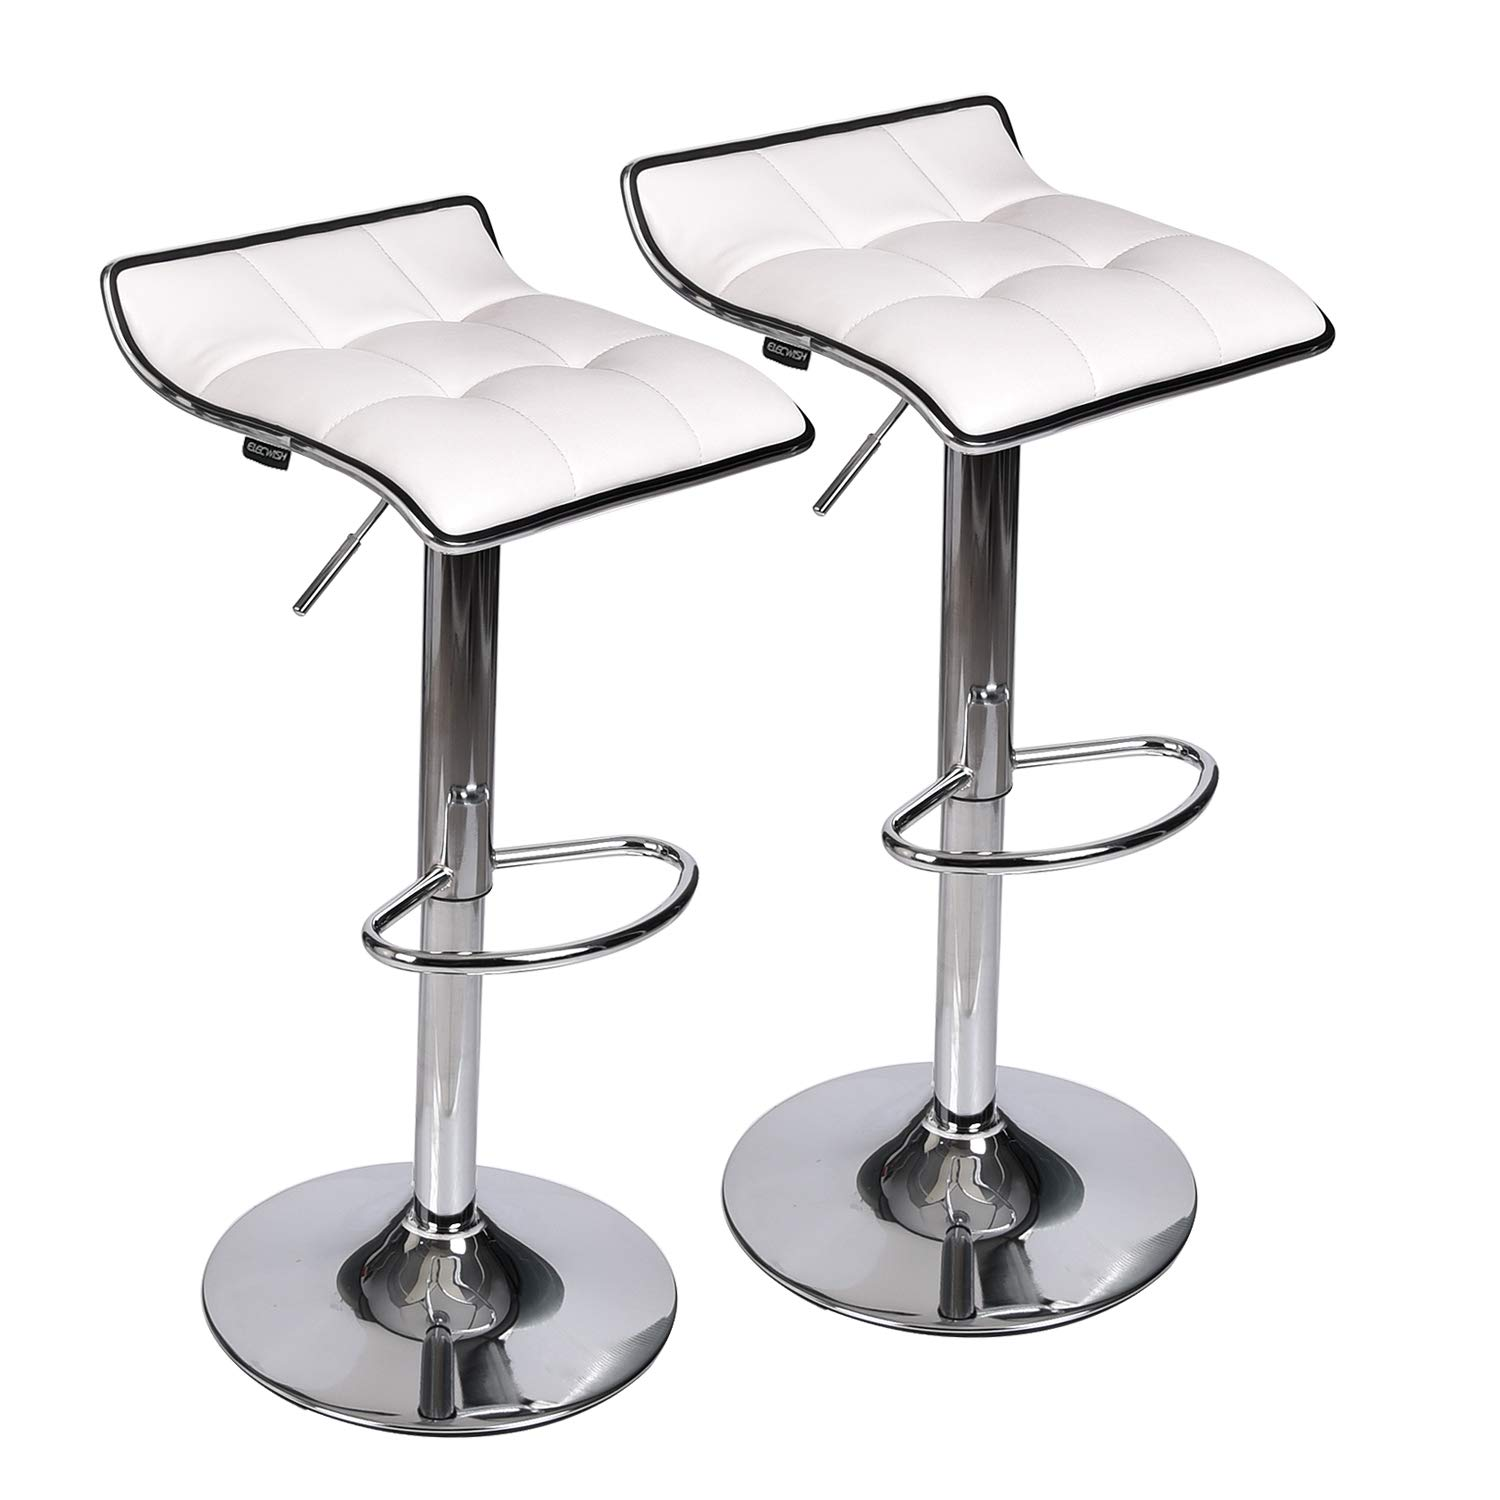 Set of 2 Adjustable Swivel Gas Lift Bar Stools, PU Leather with Chrome Base, White by PULUOMIS